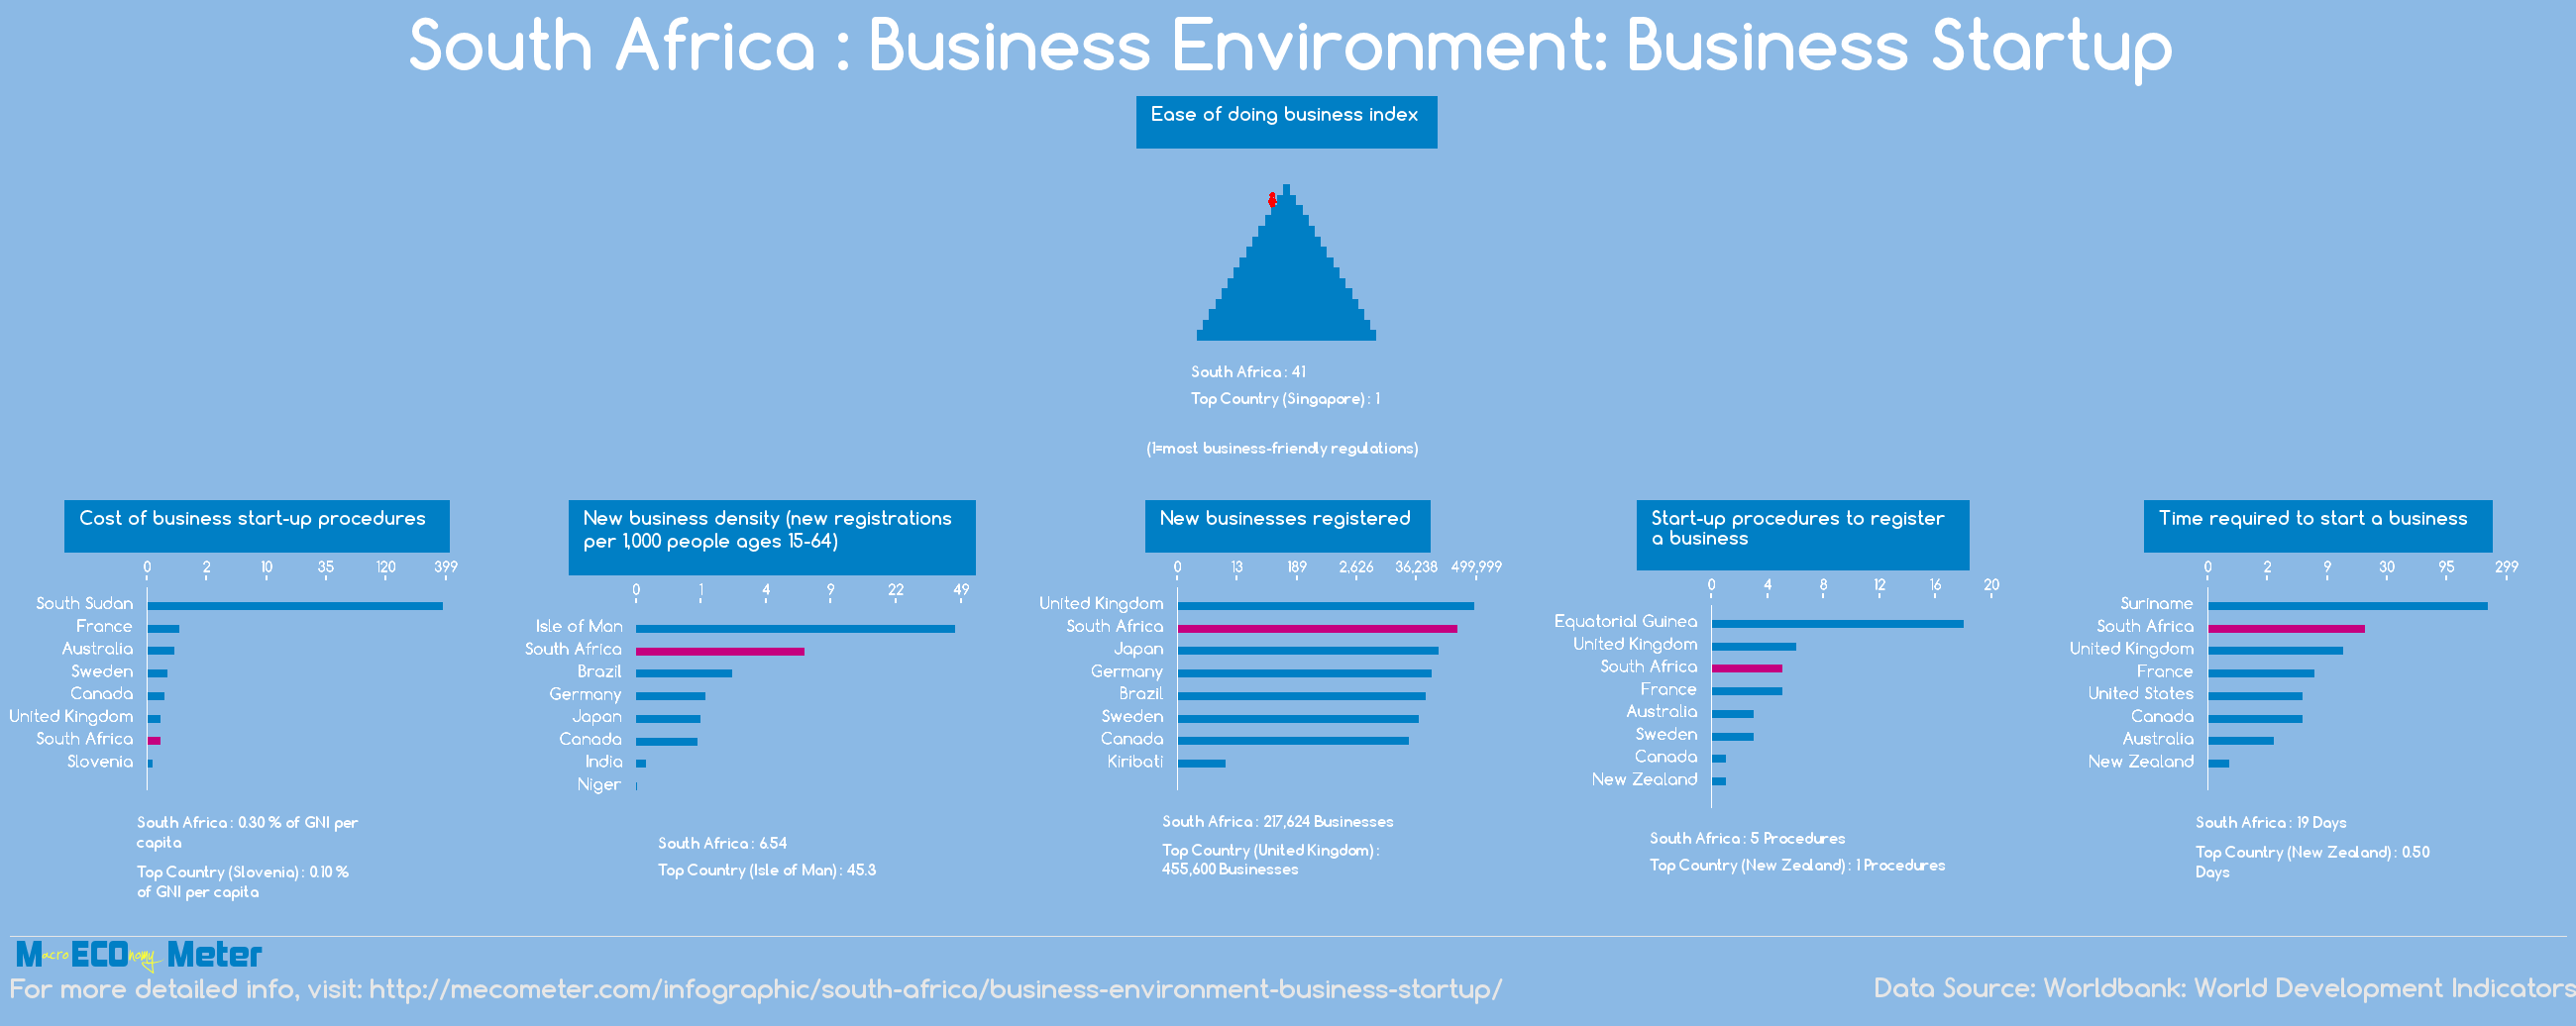 South Africa : Business Environment: Business Startup